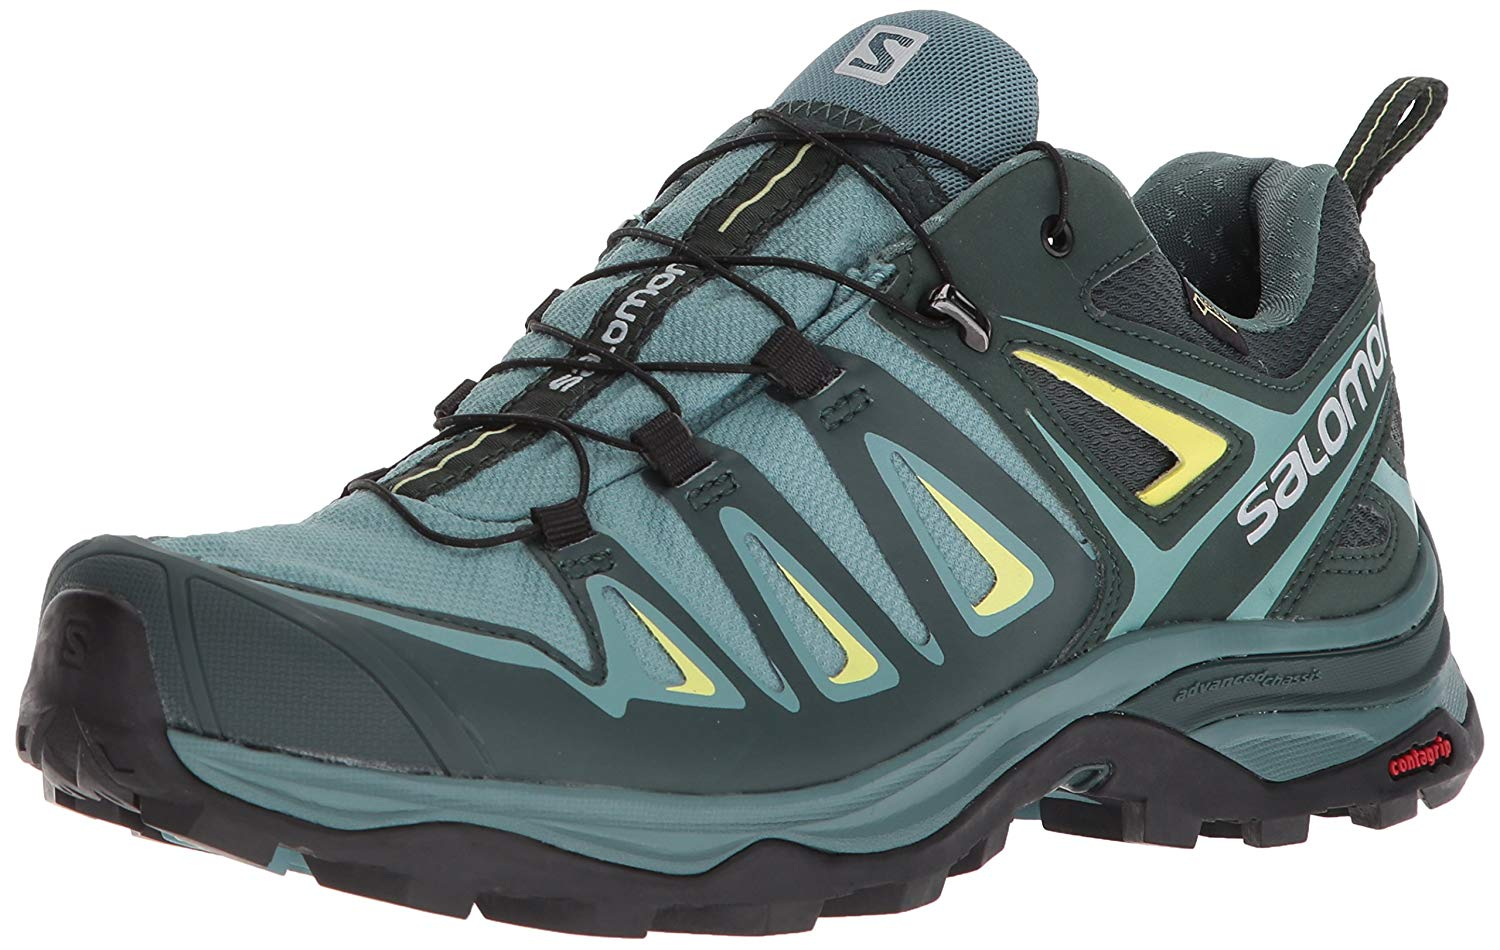 Zapatillas Salomon X Ultra 3 GTX W Verde/Negro/Amarillo